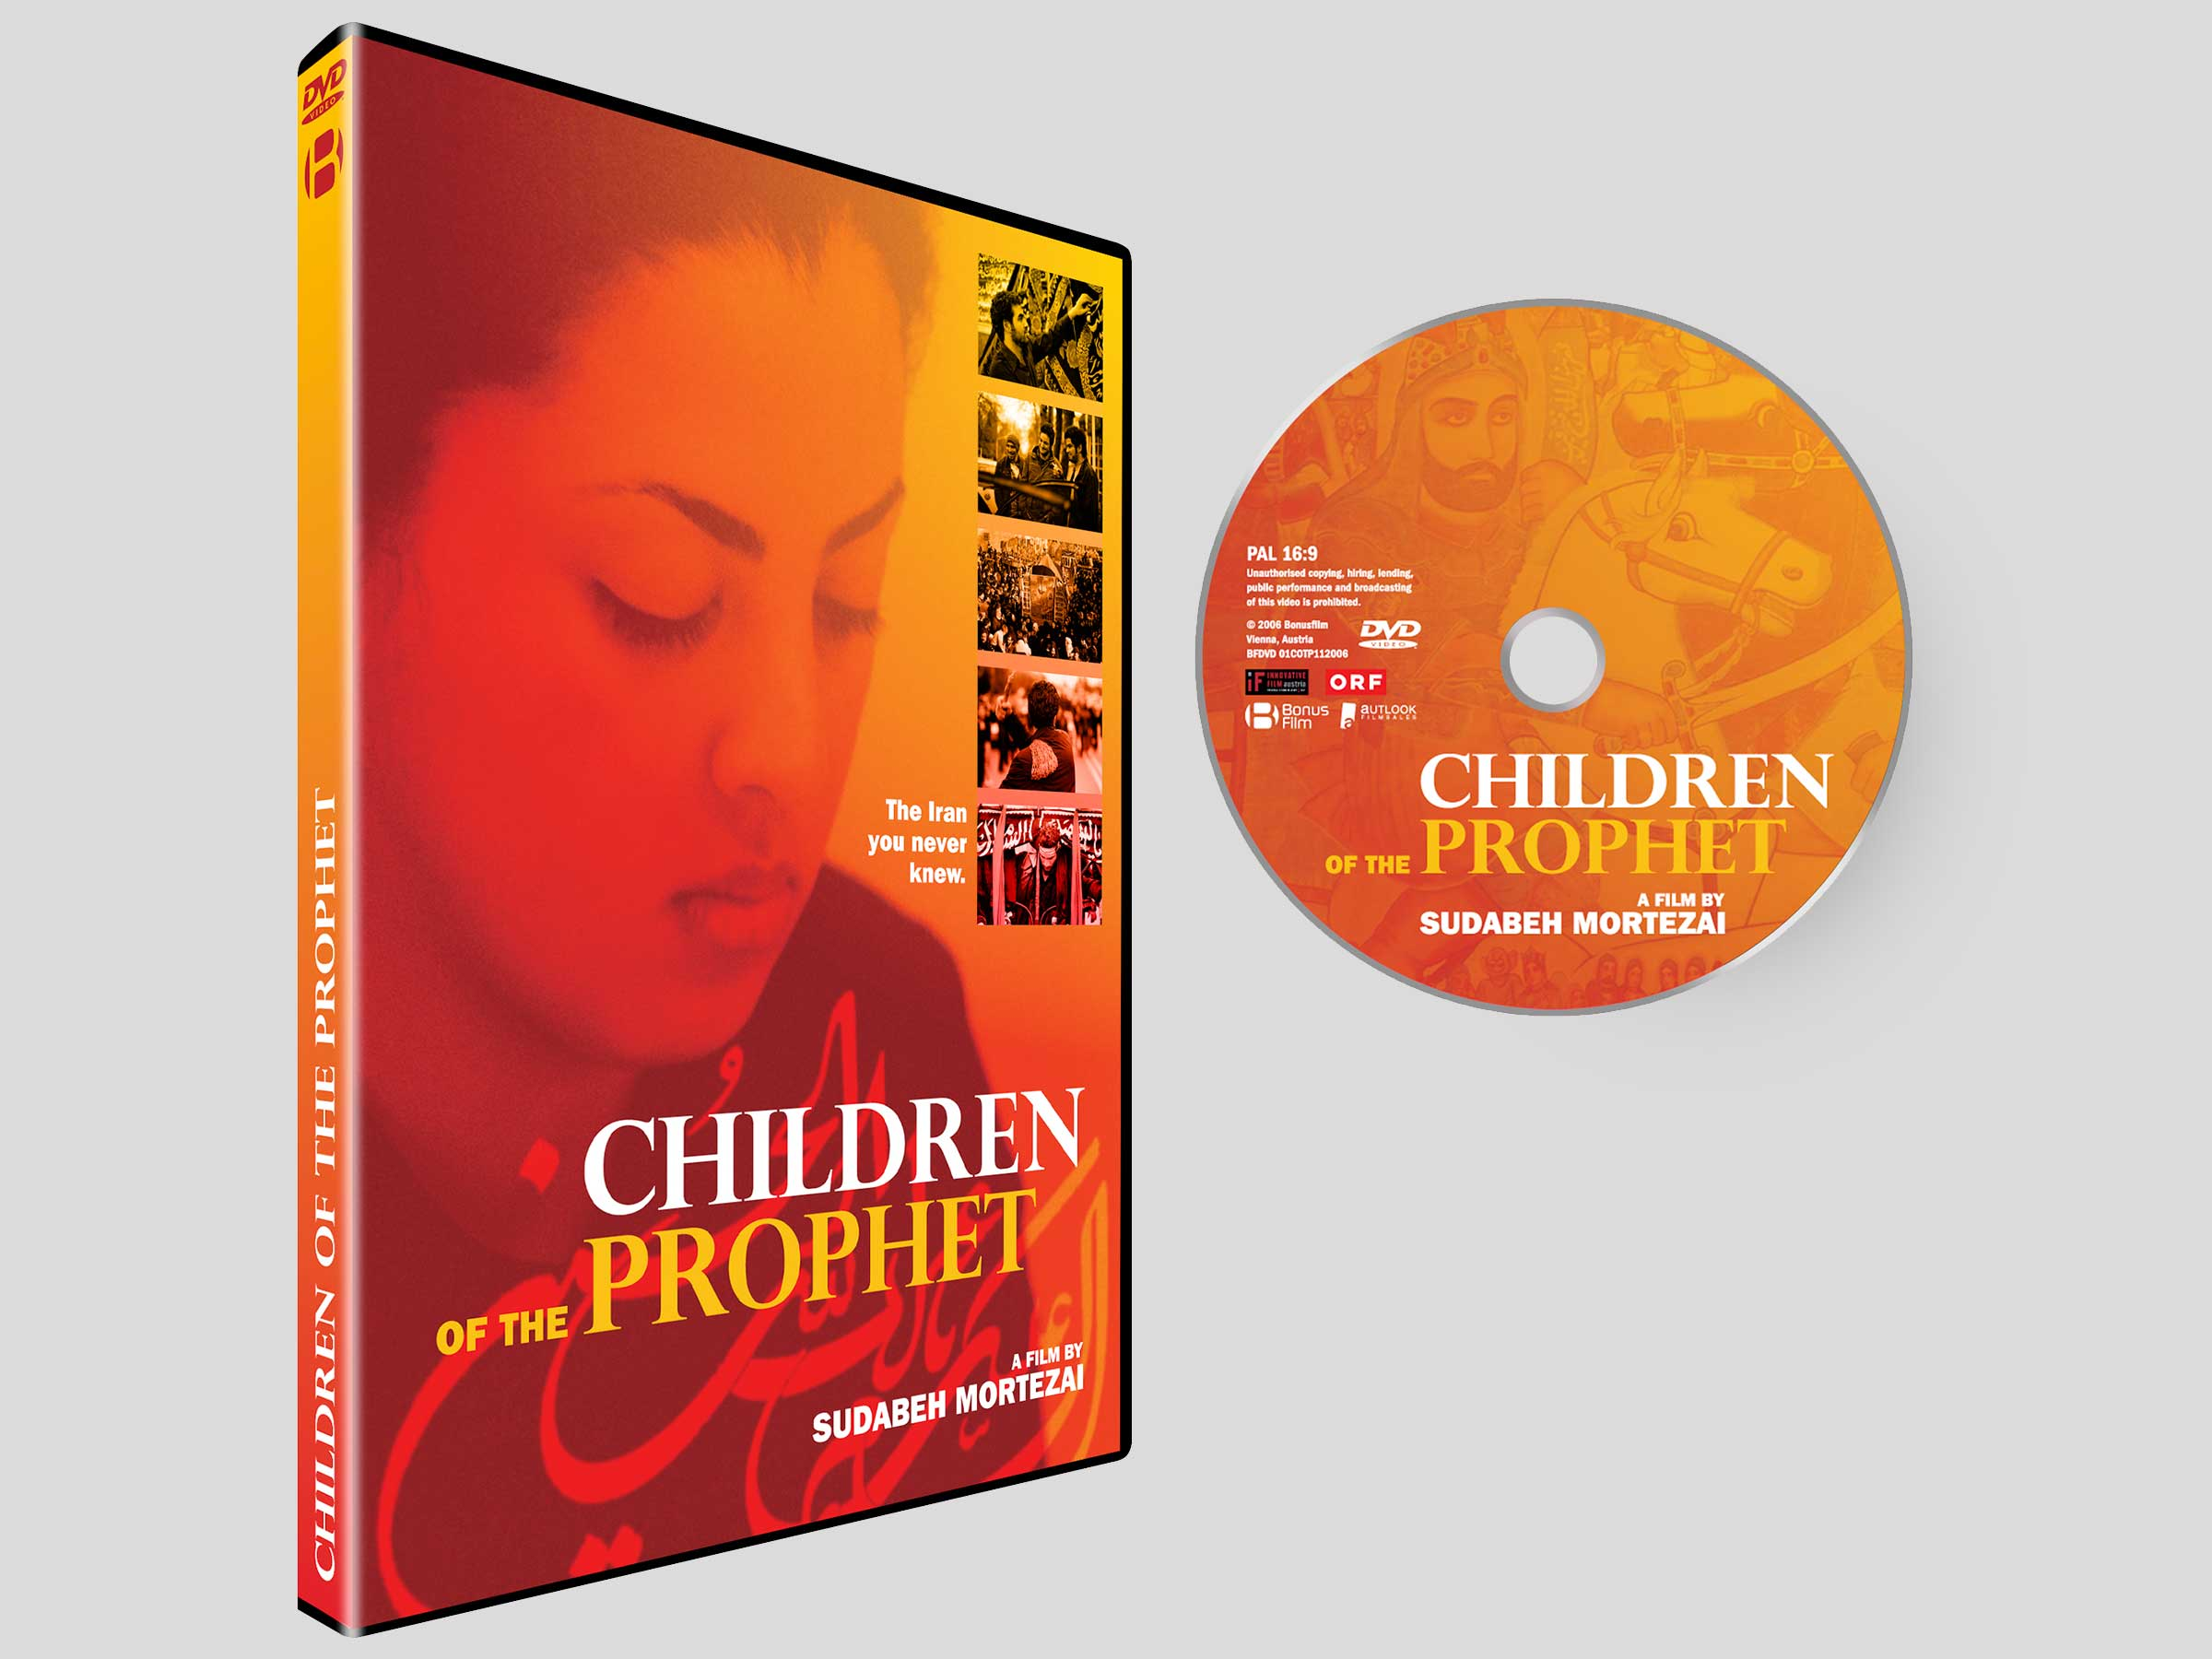 children-of-the-prophet-freibeuter-film-sudabeh-mortezai-DVD